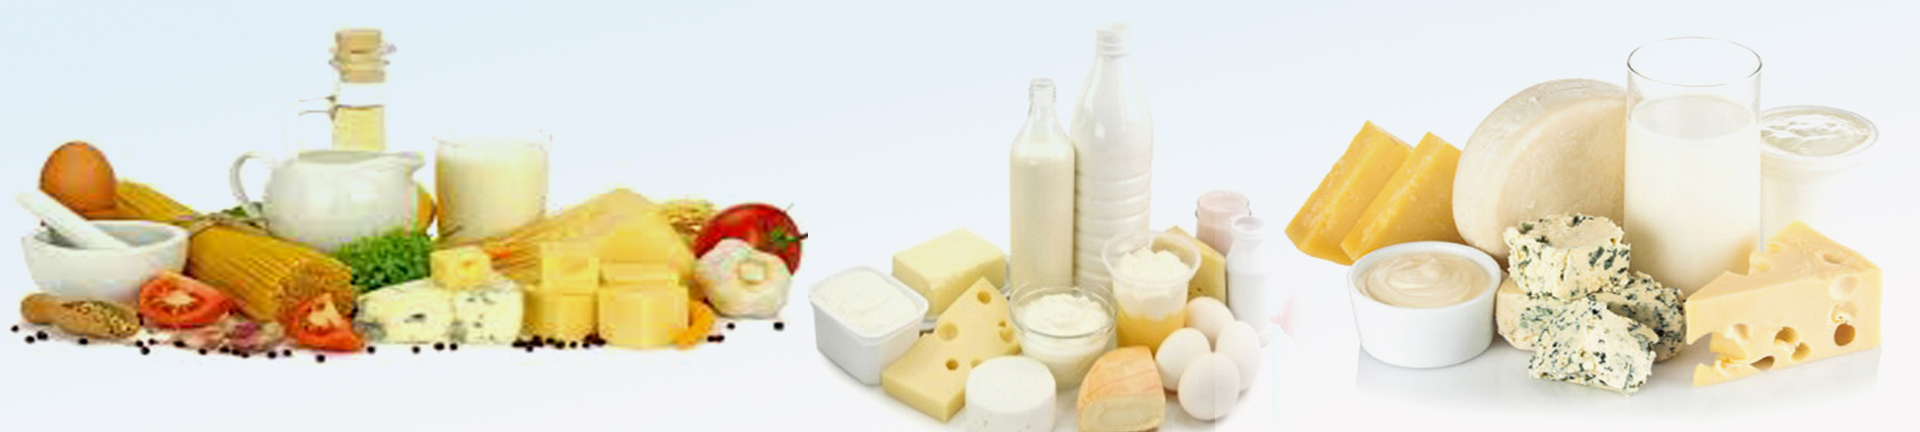 Dairy products | falconcoldstore